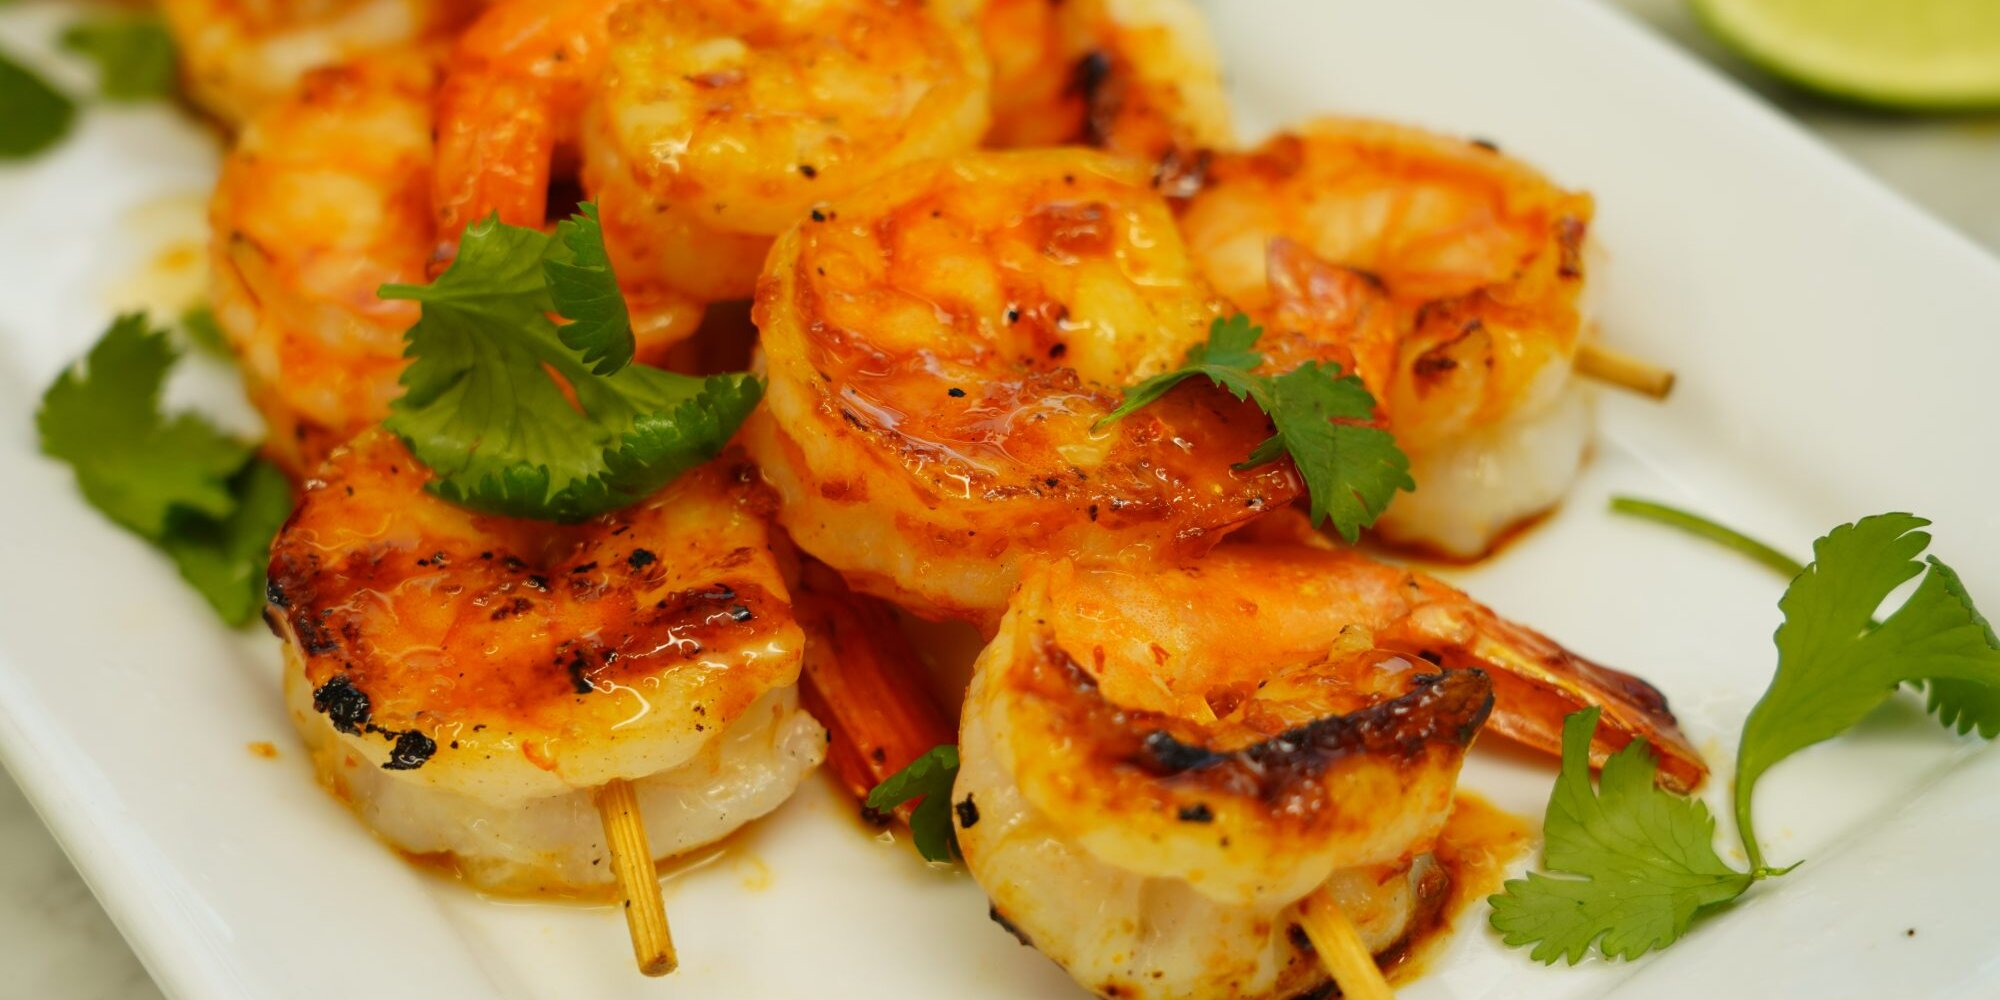 5 Easy Ways to Cook Shrimp